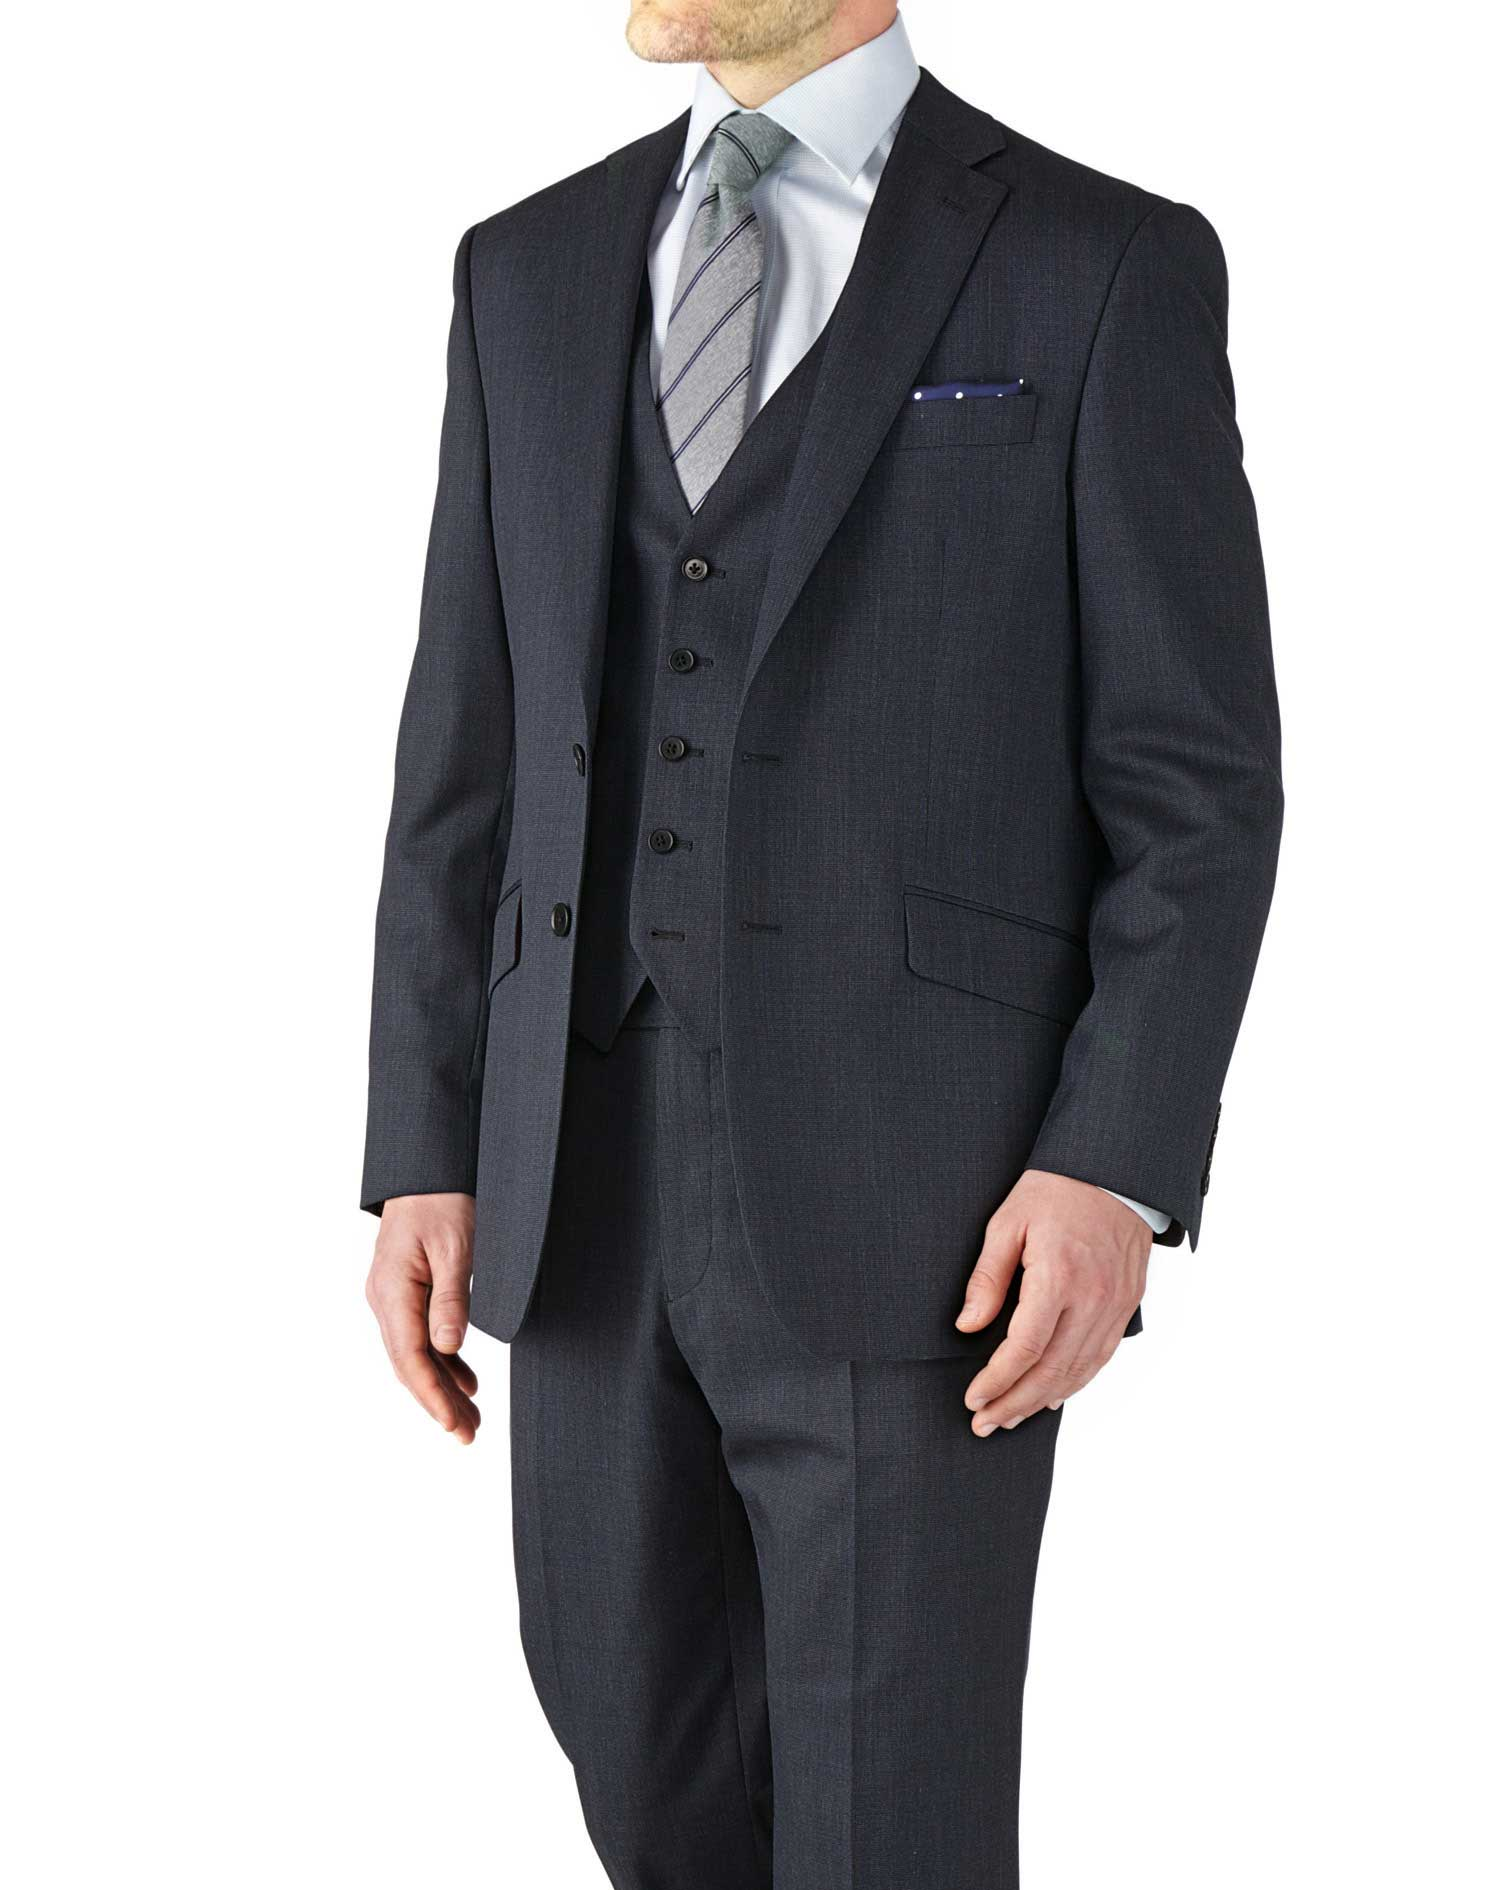 Navy Classic Fit End-On-End Business Suit Wool Jacket Size 36 Regular by Charles Tyrwhitt